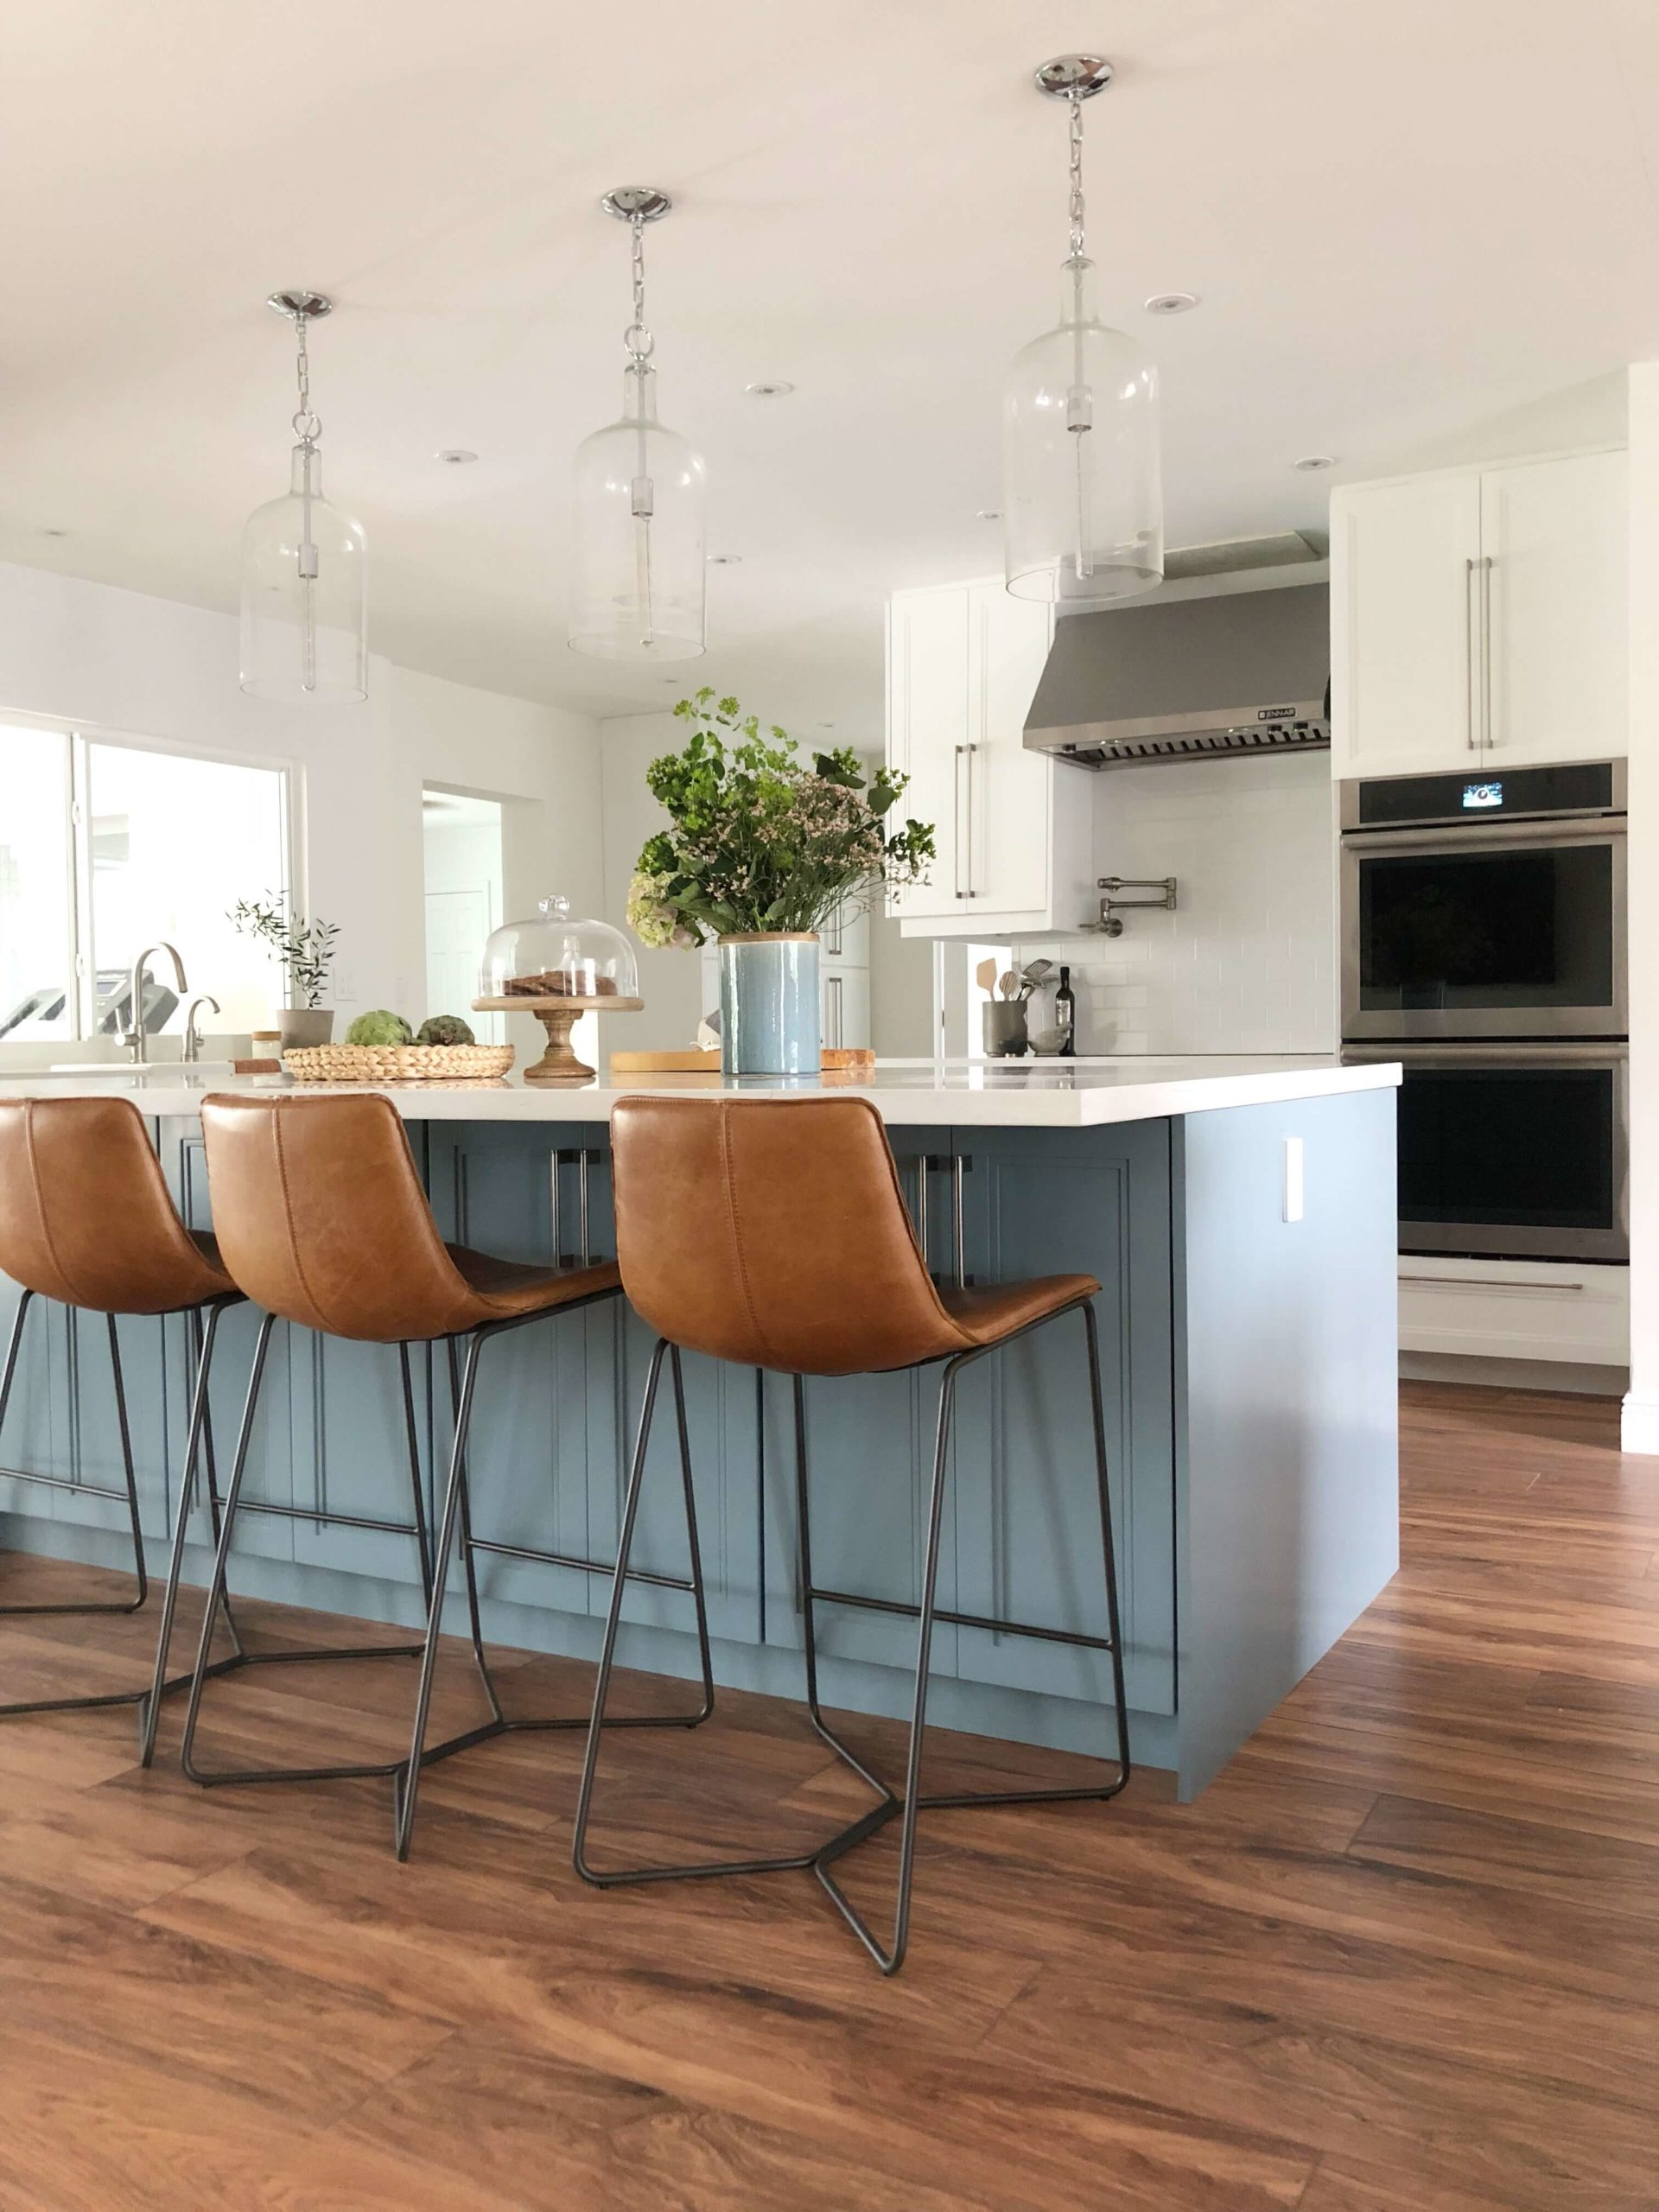 A Florida Kitchen Remodel by the Nordic Design Company